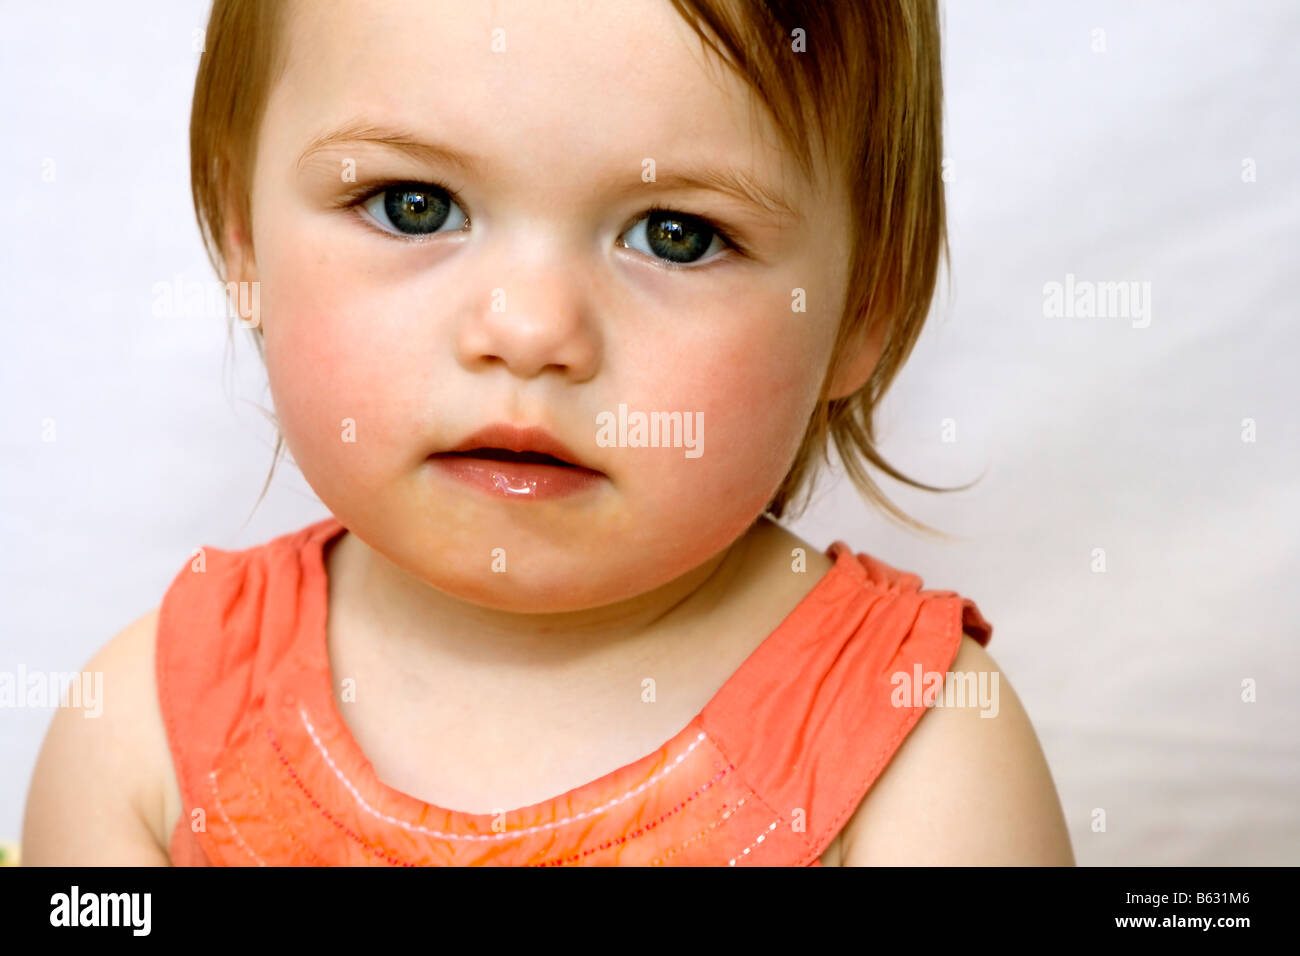 Portrait of a big-eyed baby girl. - Stock Image